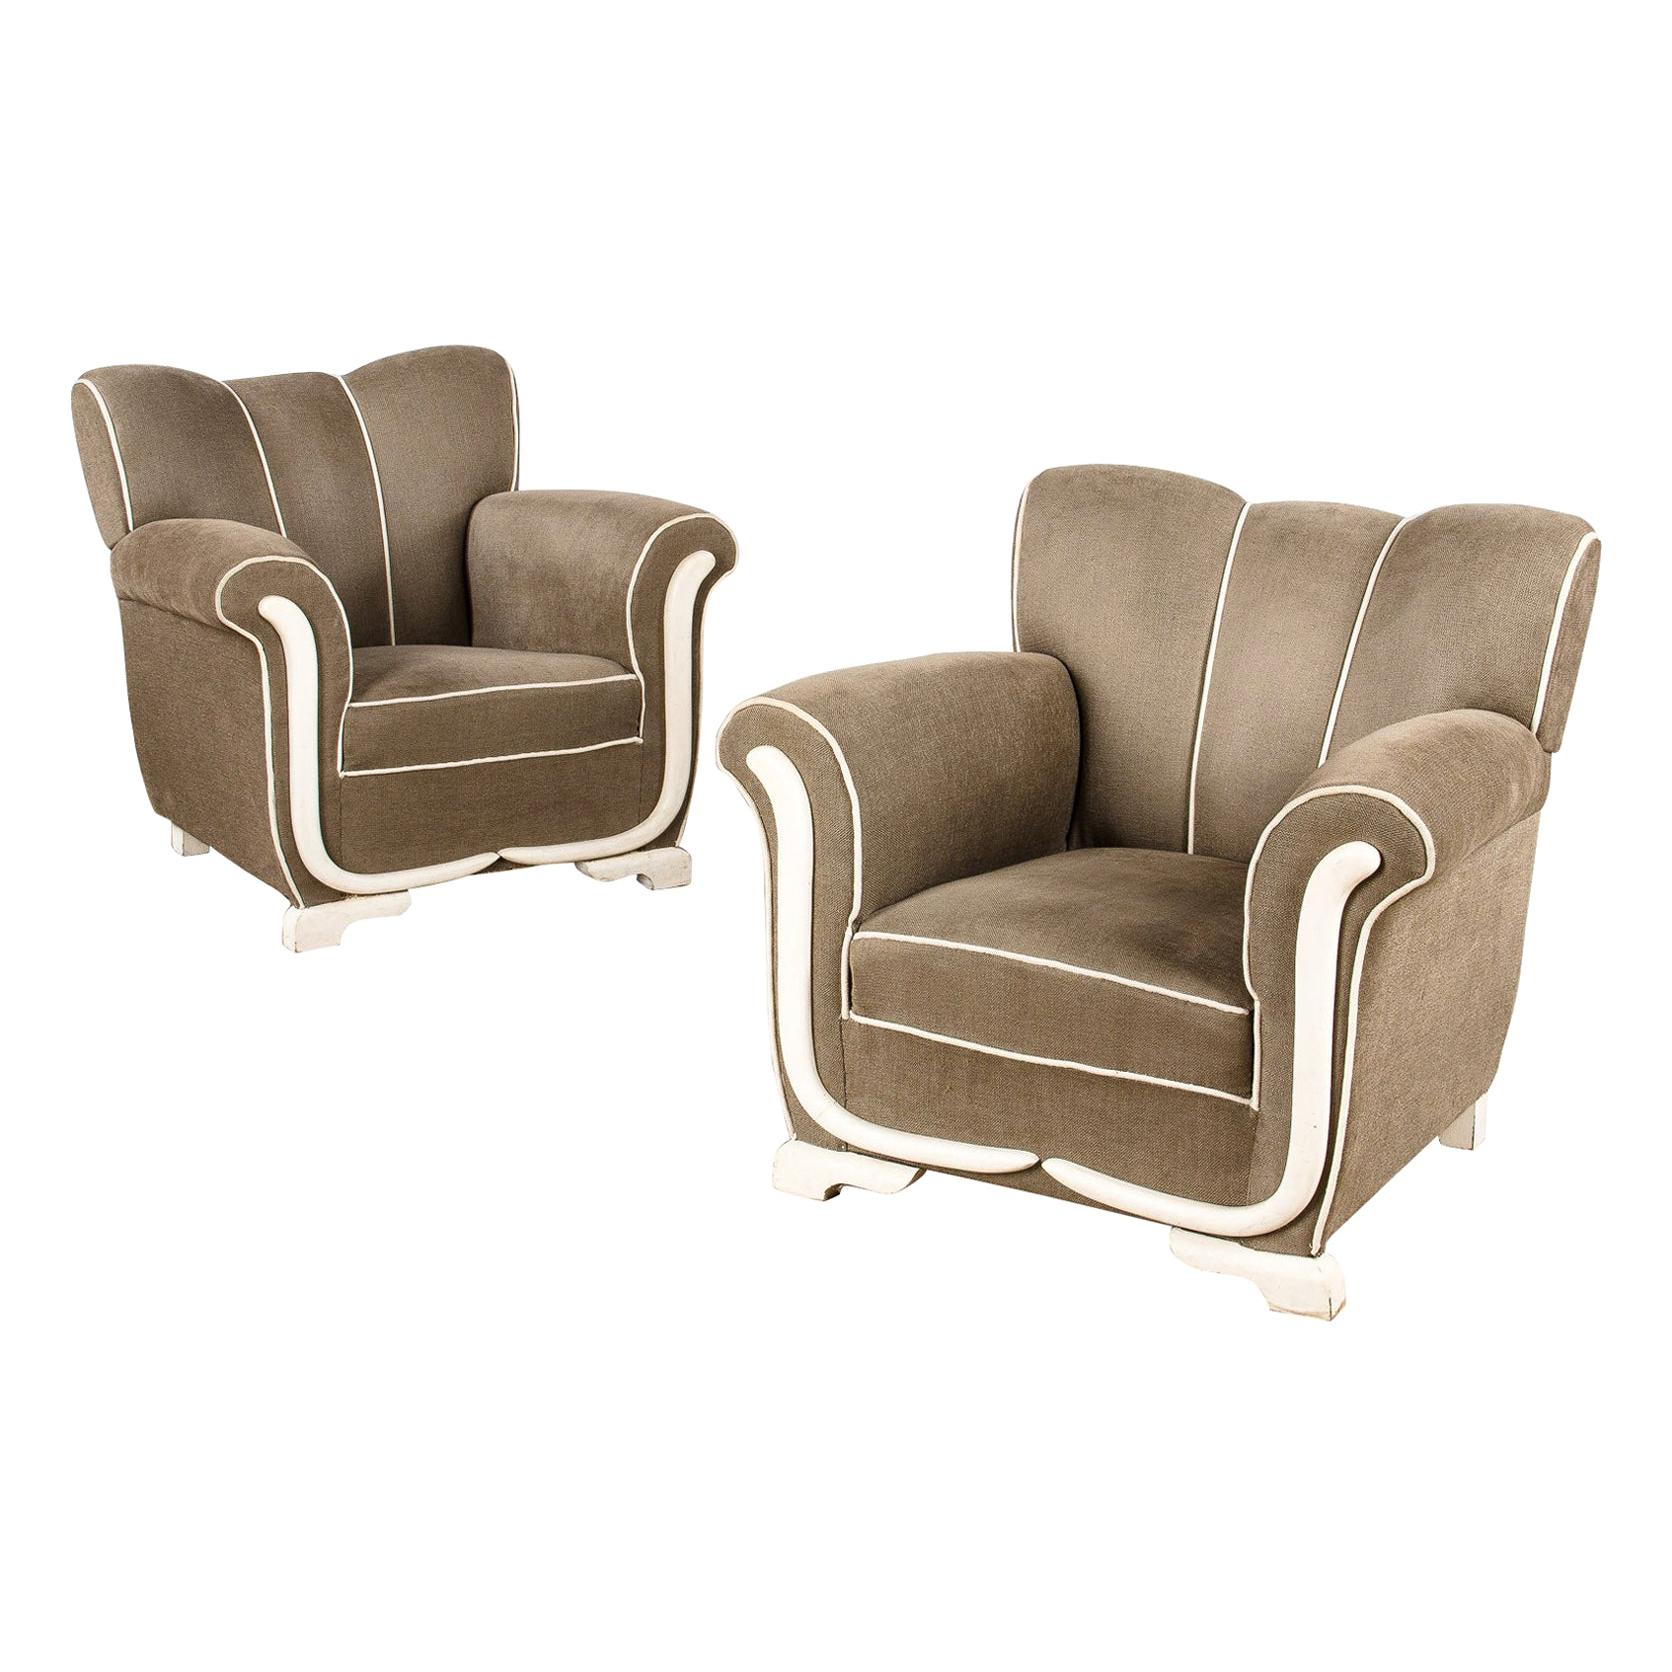 Pair of French Art Deco Upholstered Armchairs, 1940s